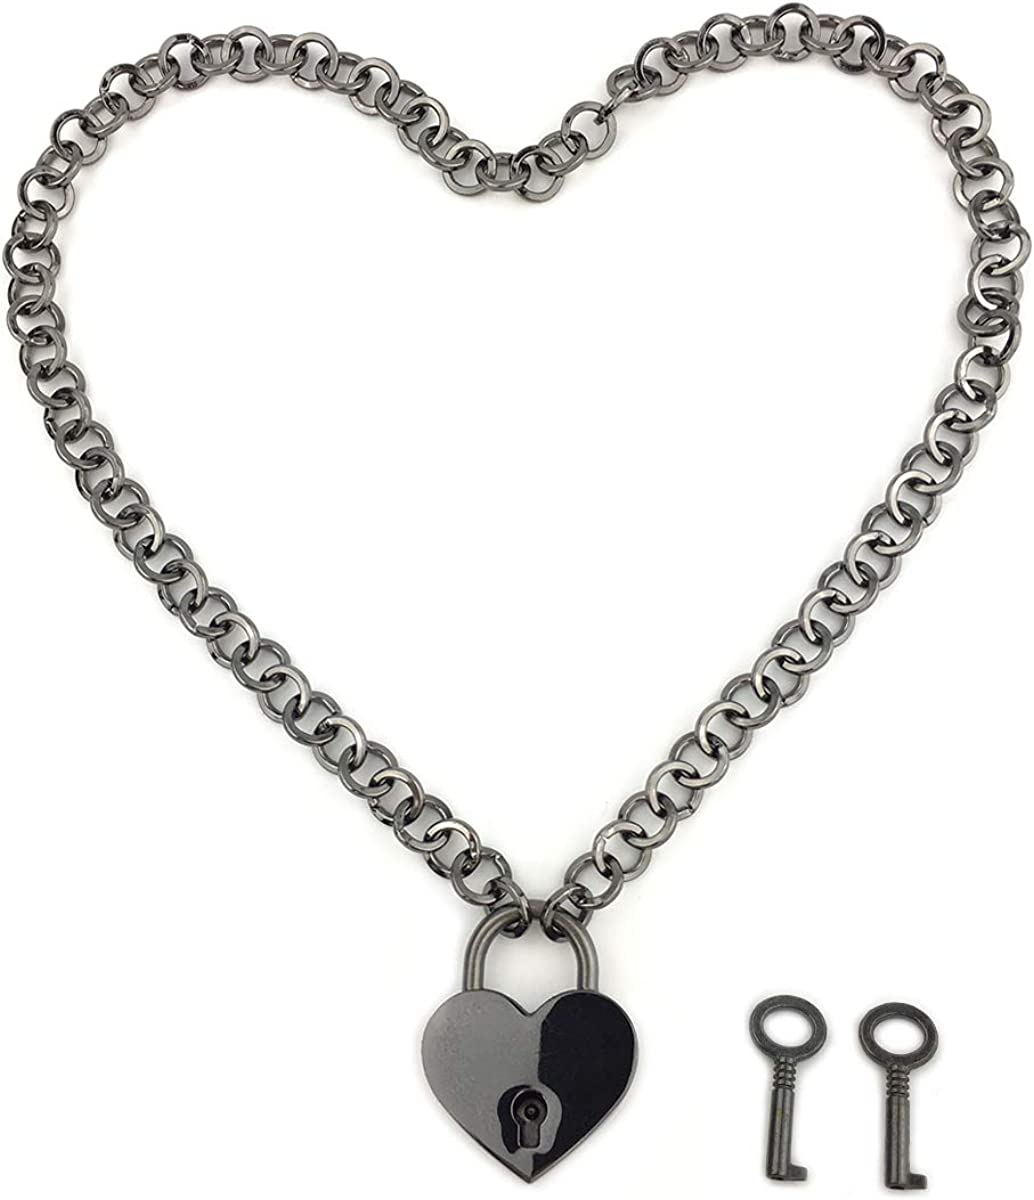 Padlock Necklace Chain Collar Choker with Two Keys and Box for Women,Girls and Men